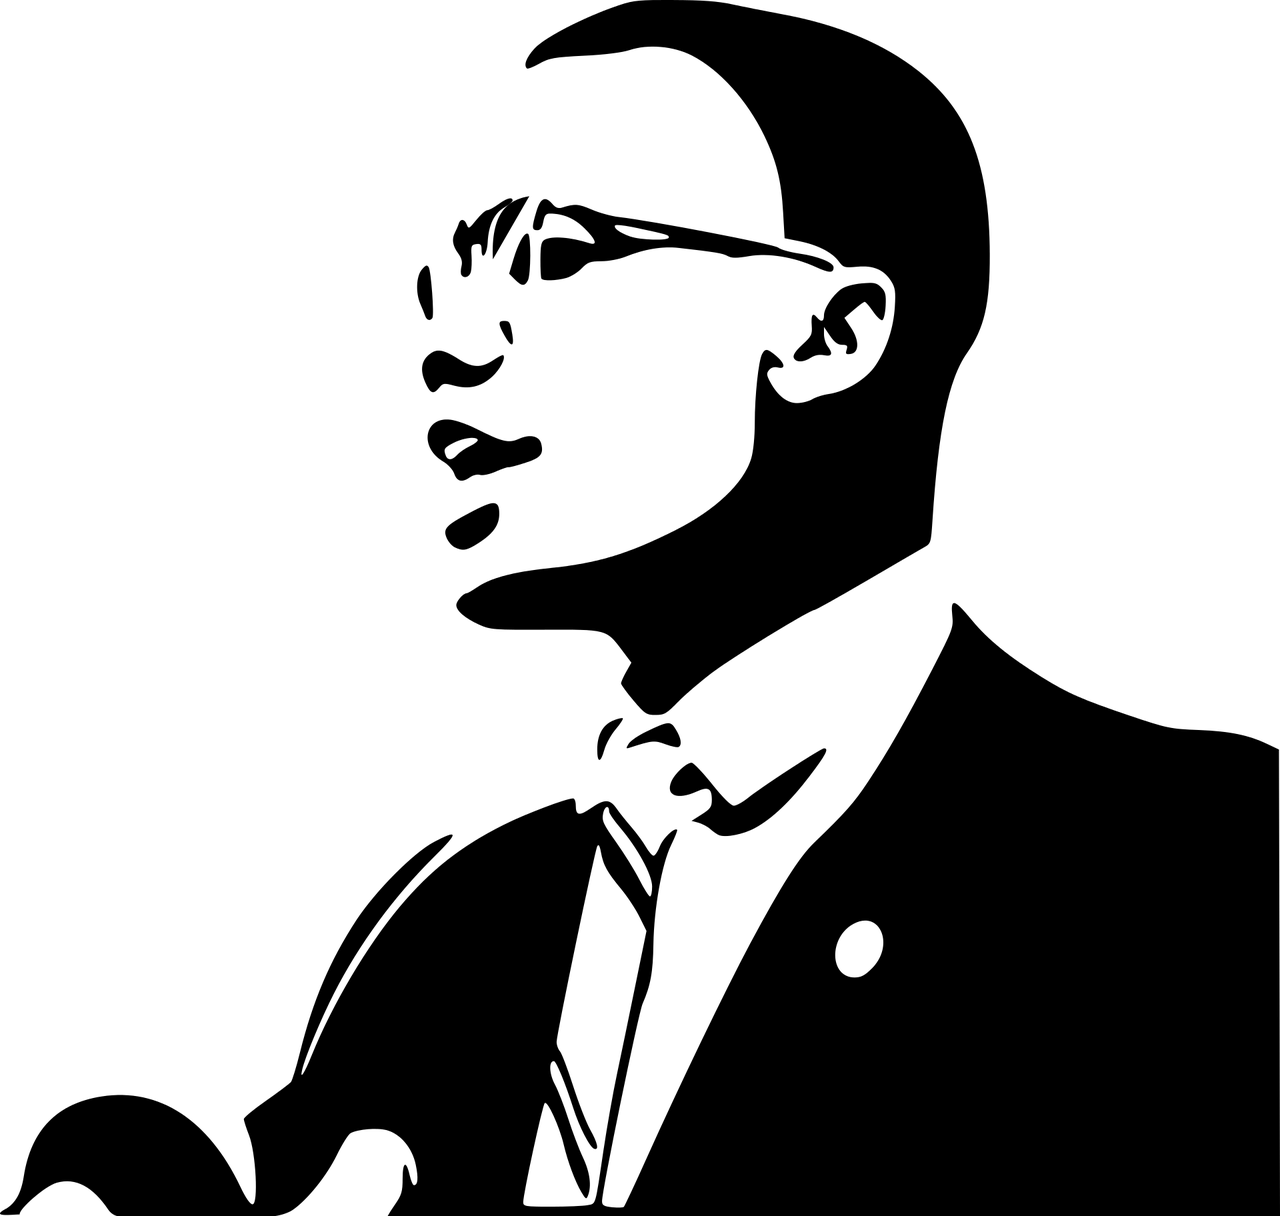 Malcolm X Was Assassinated On This Day Fifty-Six Years Ago – Here Are Teaching & Learning Resources